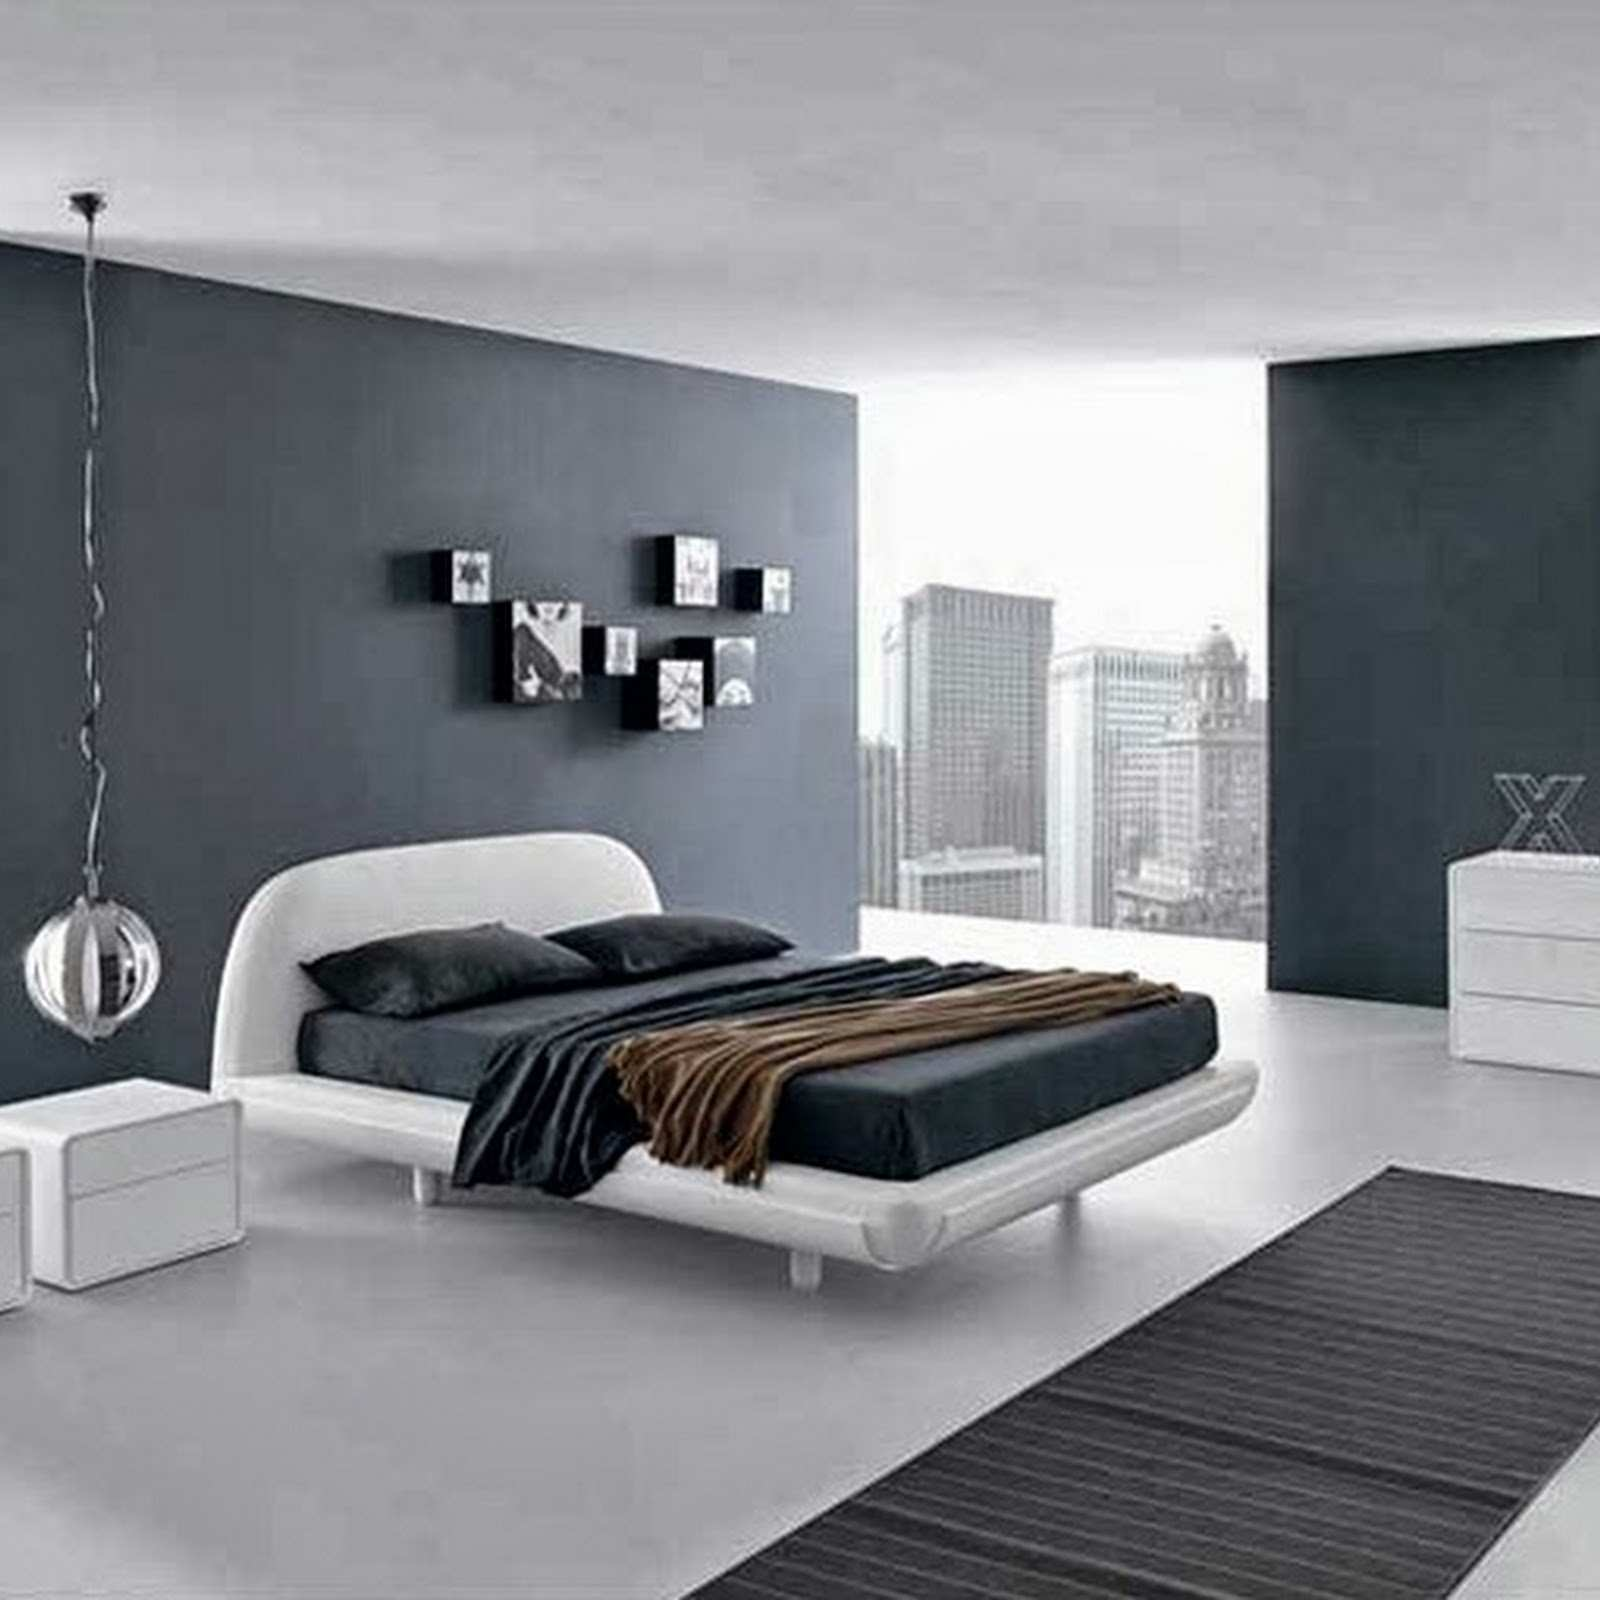 Amazing Grey Wall Decor Ideas 28 Bedroom Decorating Furniture Gray